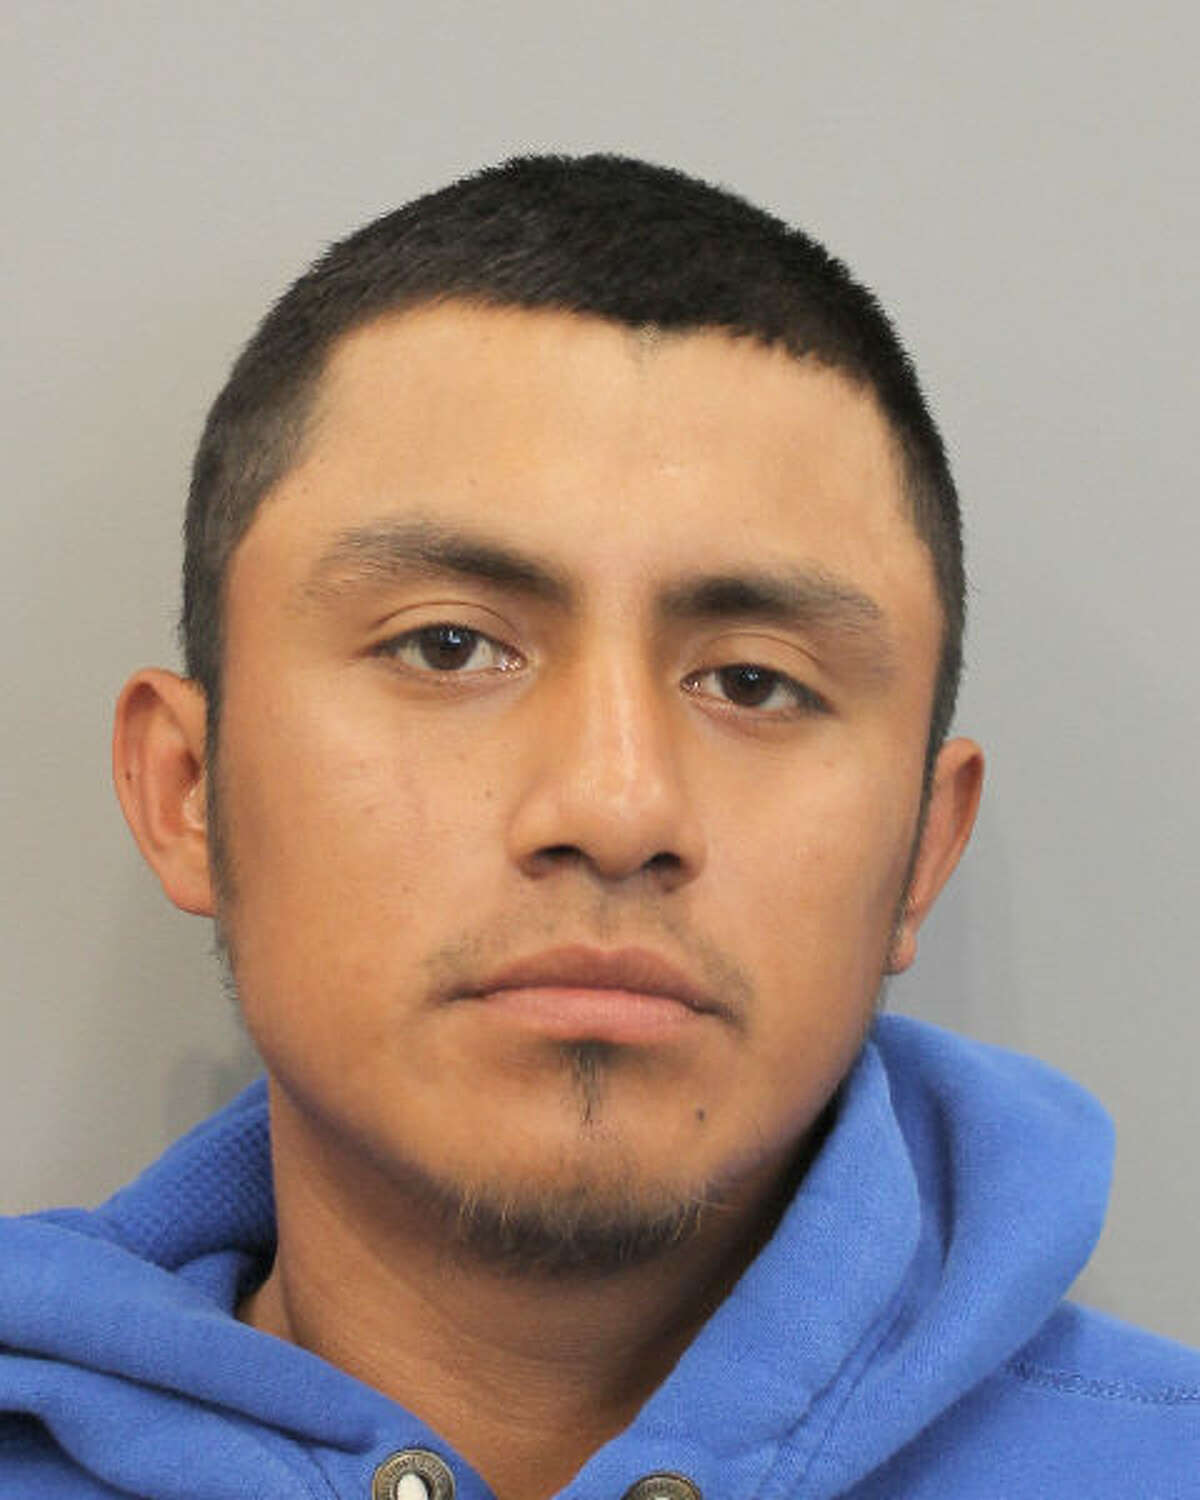 Edwin Figueroa, 23, was charged with murder for allegedly shootingRafael Nunez, 22, to death at10440 South Drive on April 10, 2019.